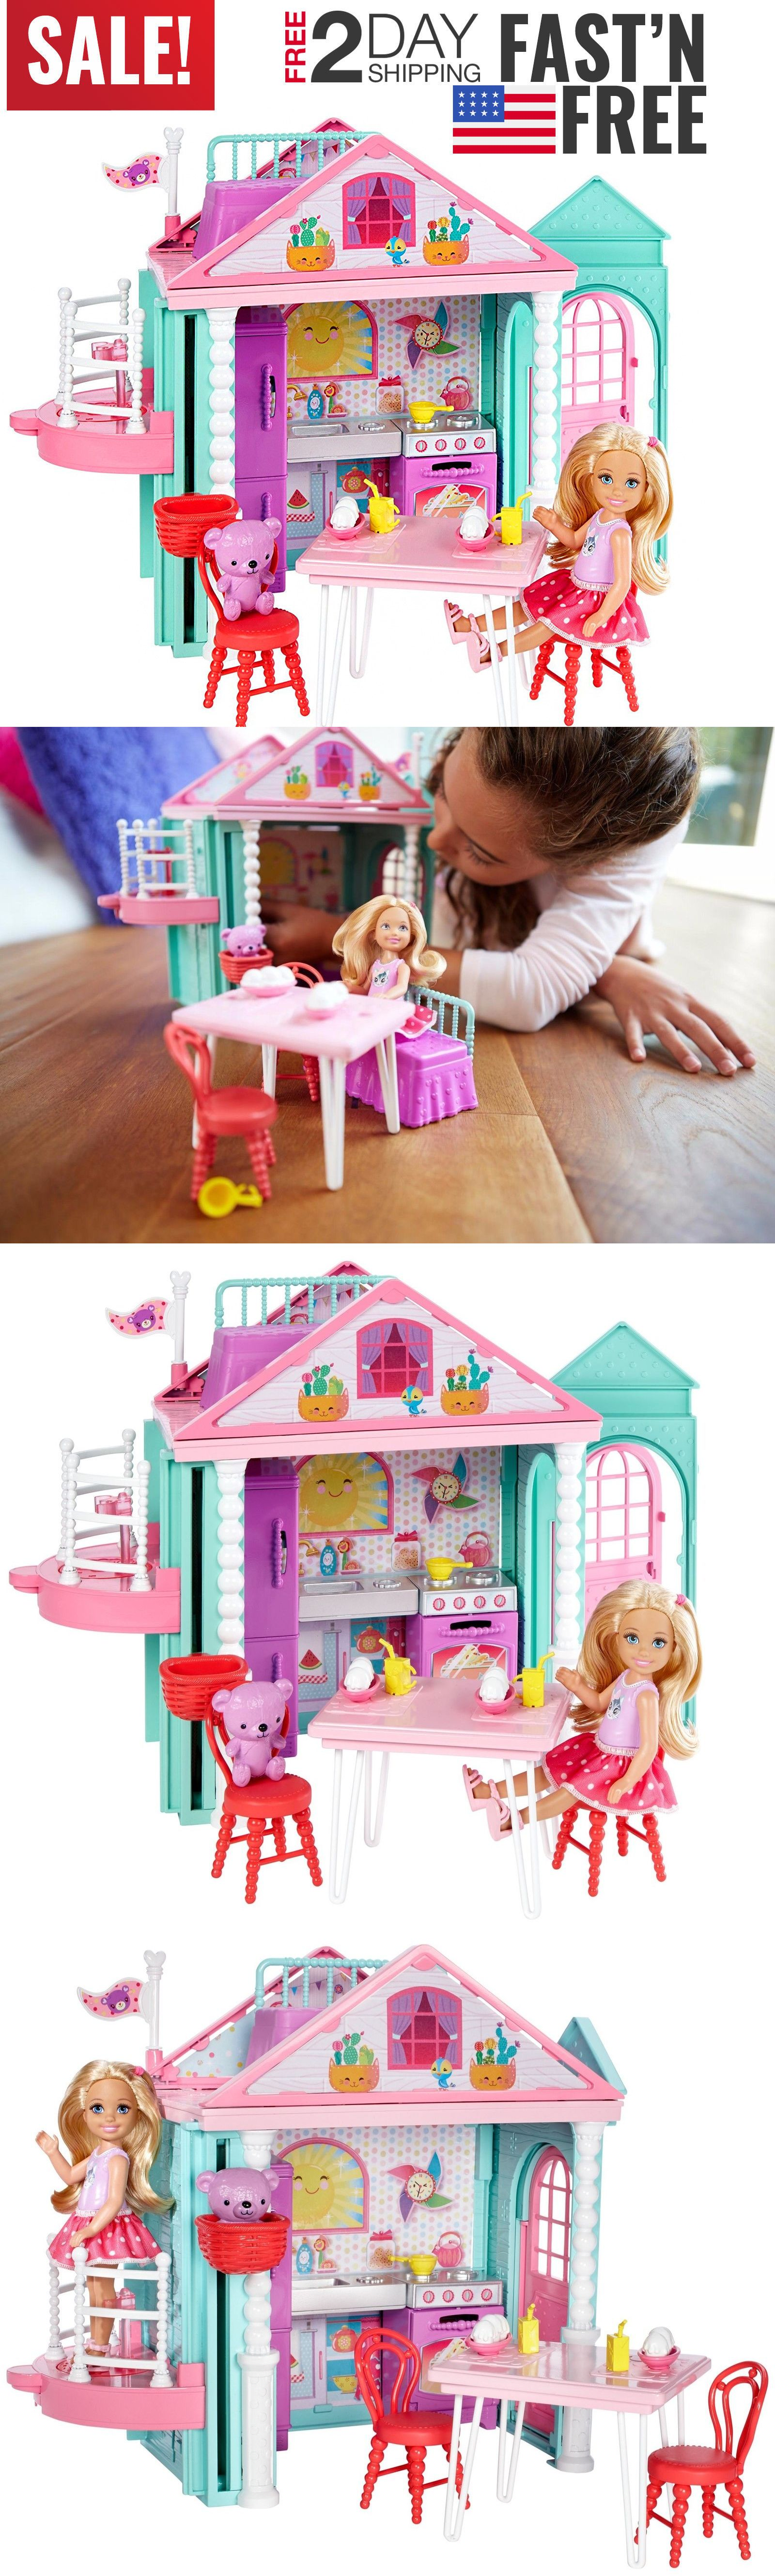 Developmental Baby Toys 100227: For Girls Doll House Kids Toddler 4 5 6 7 8 9 Year Old Age Cool Toy -\u003e BUY IT NOW ONLY: $32.99 on eBay!